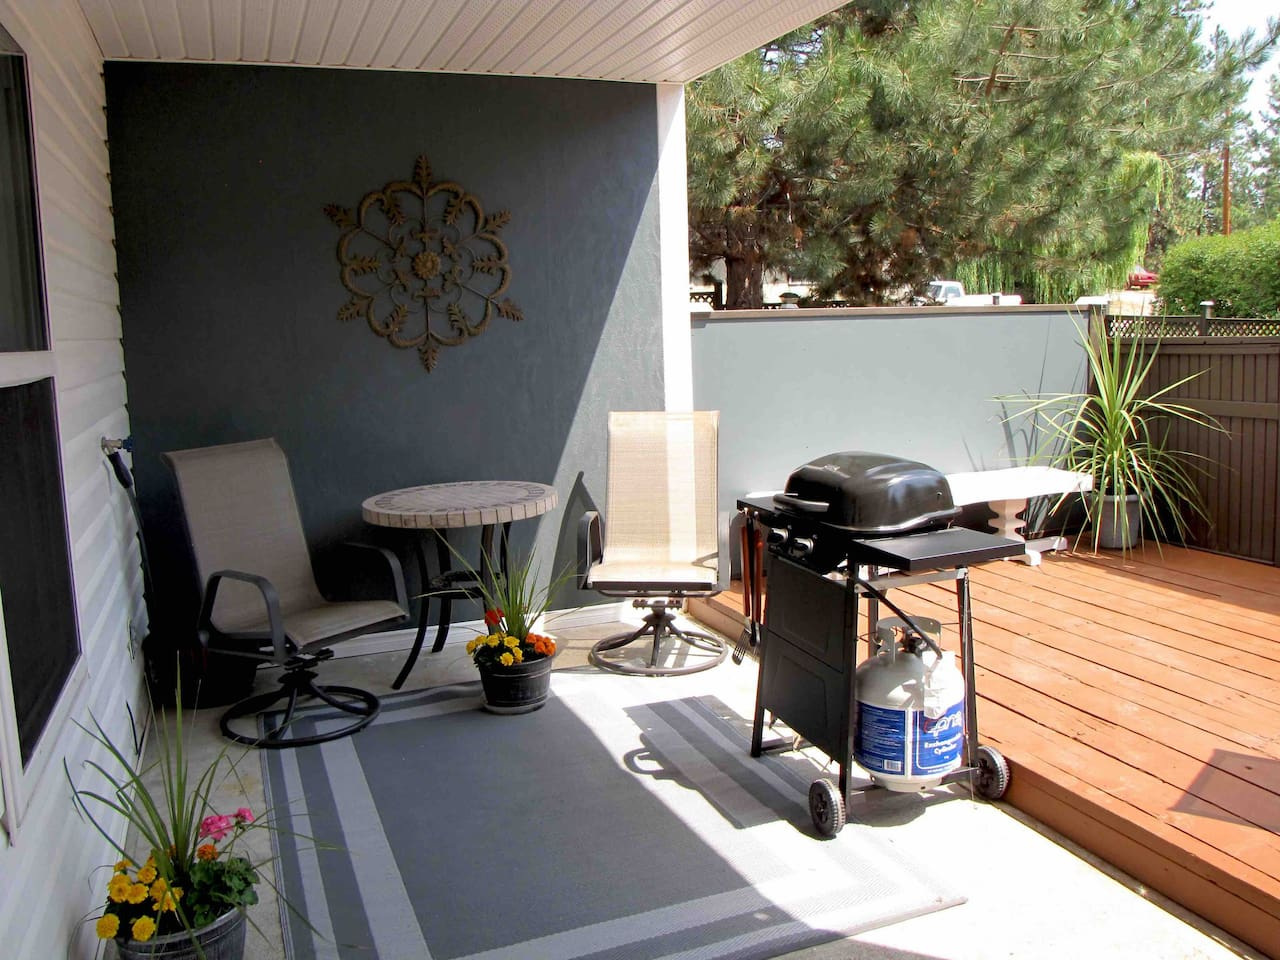 Private patio with seating, barbecue and picnic table